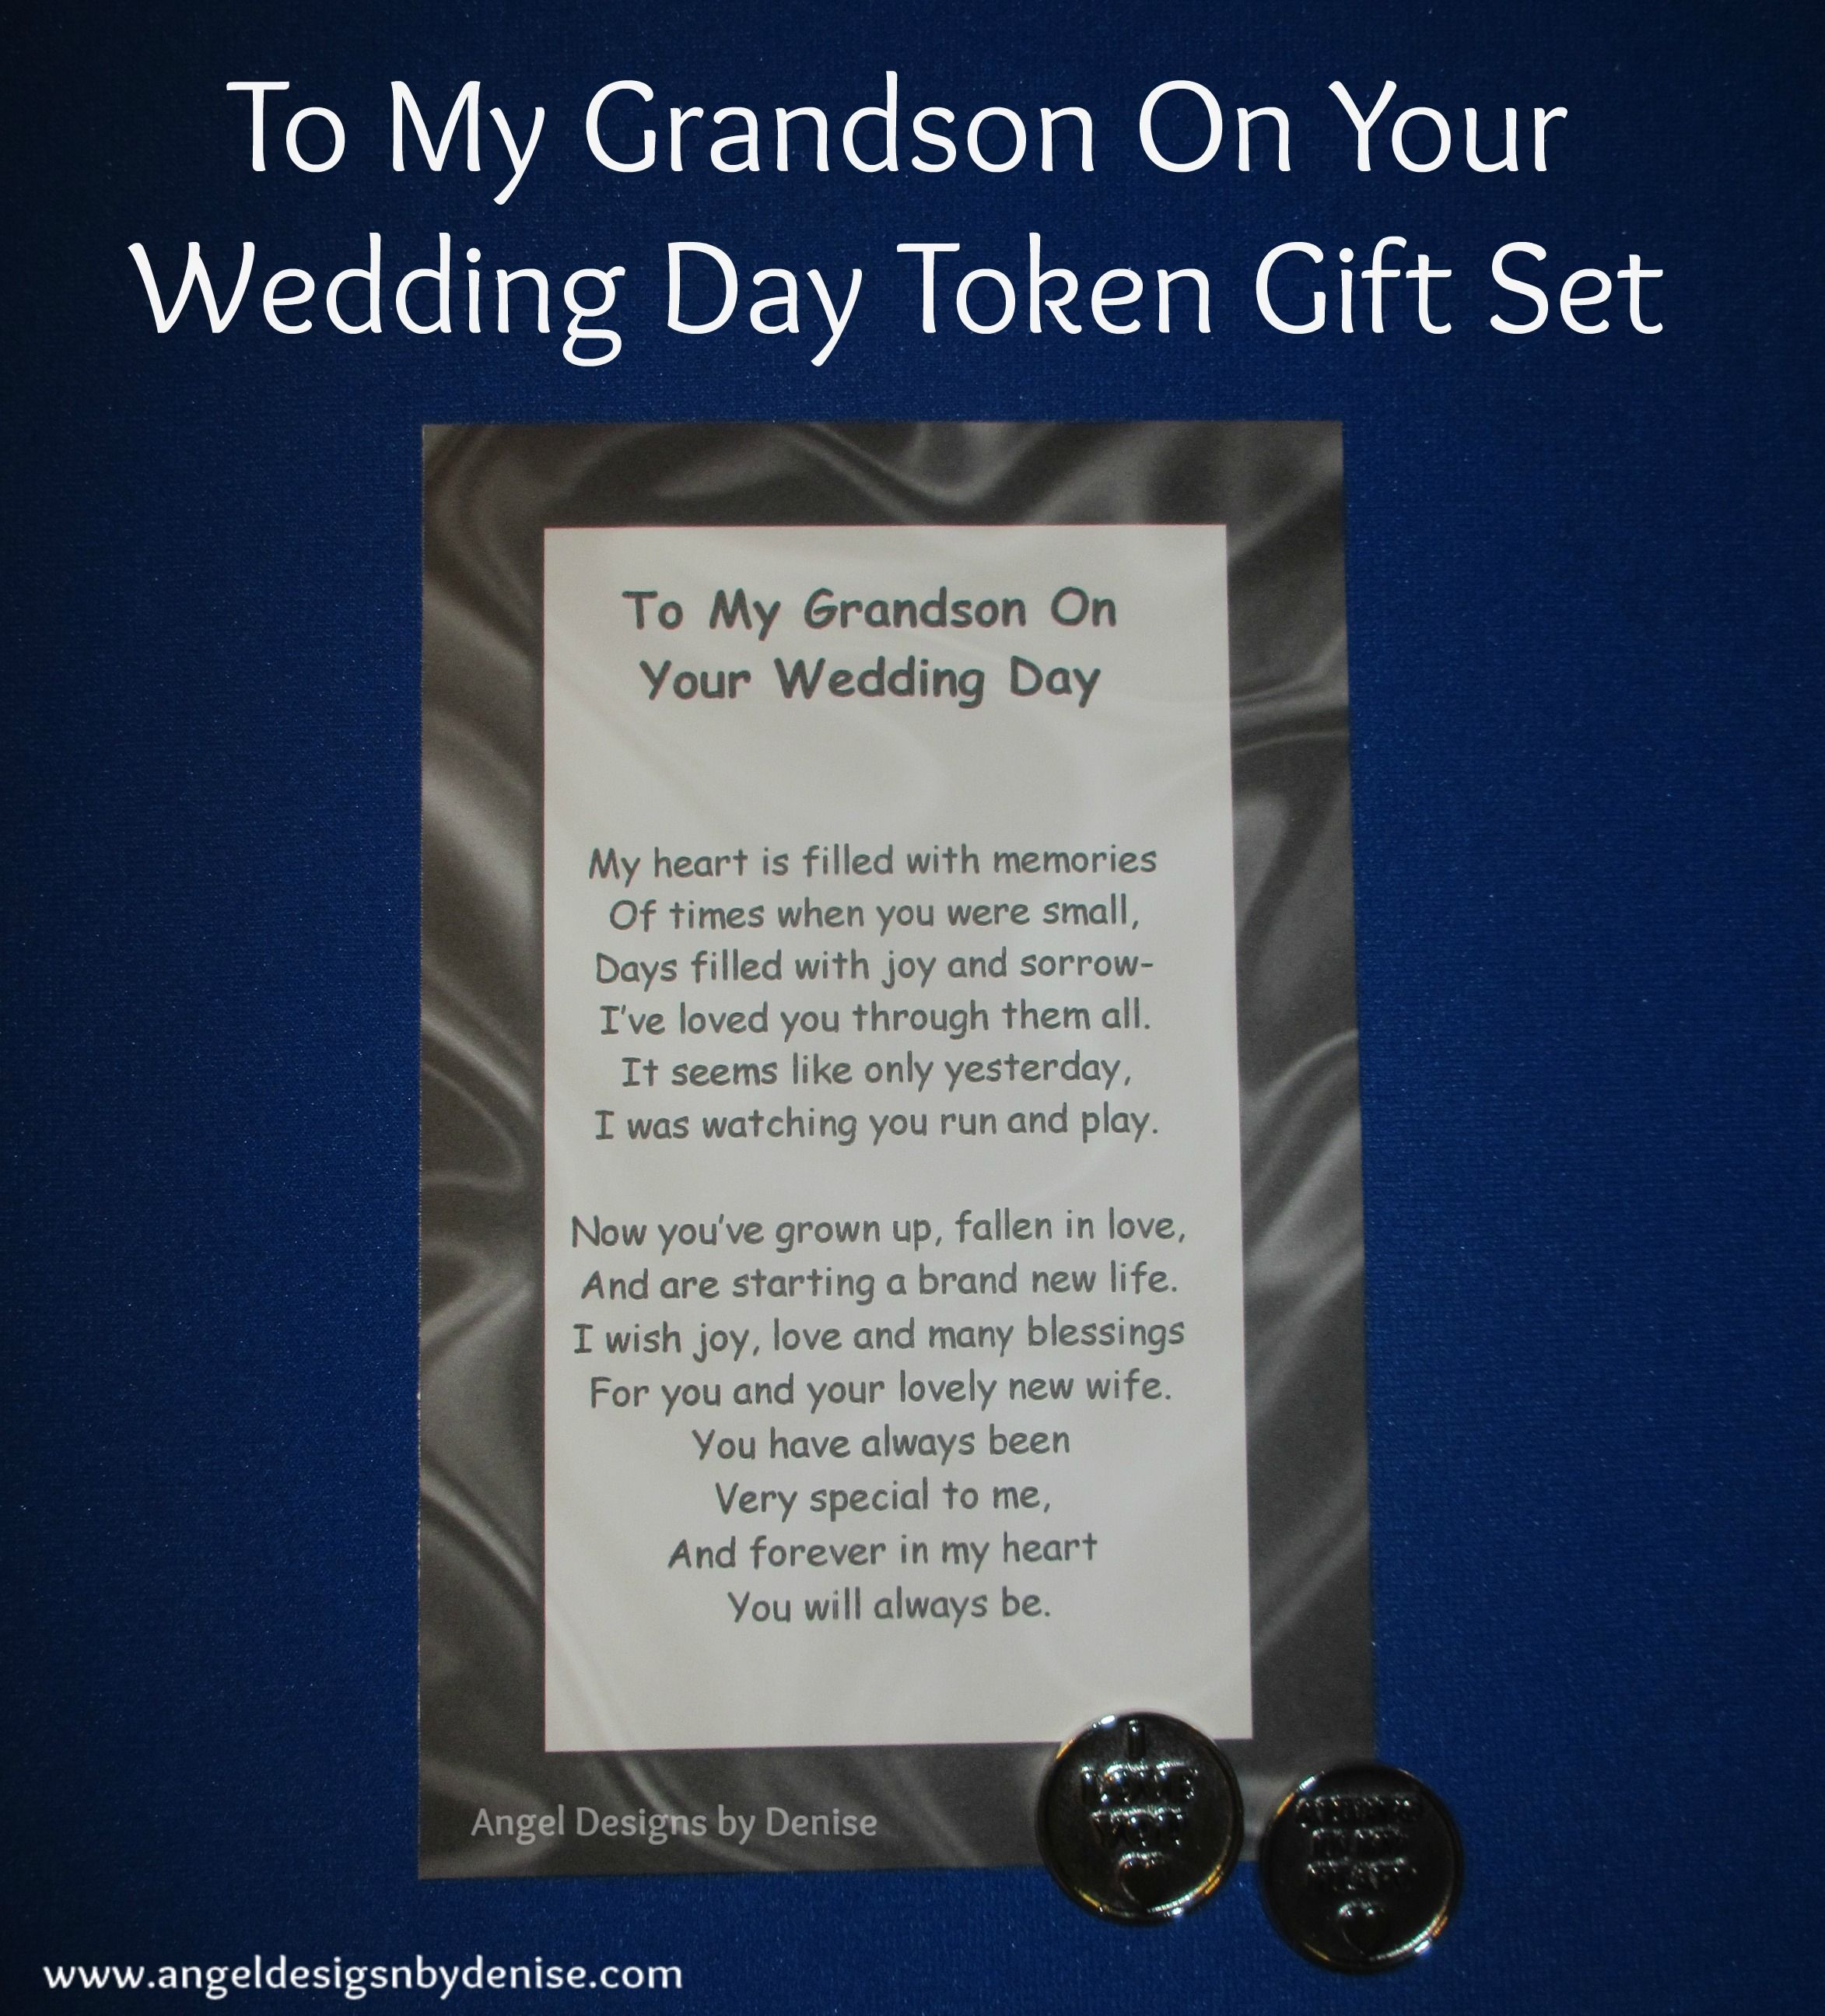 Give This Grandson Token Gift Set To Your Grandson On His